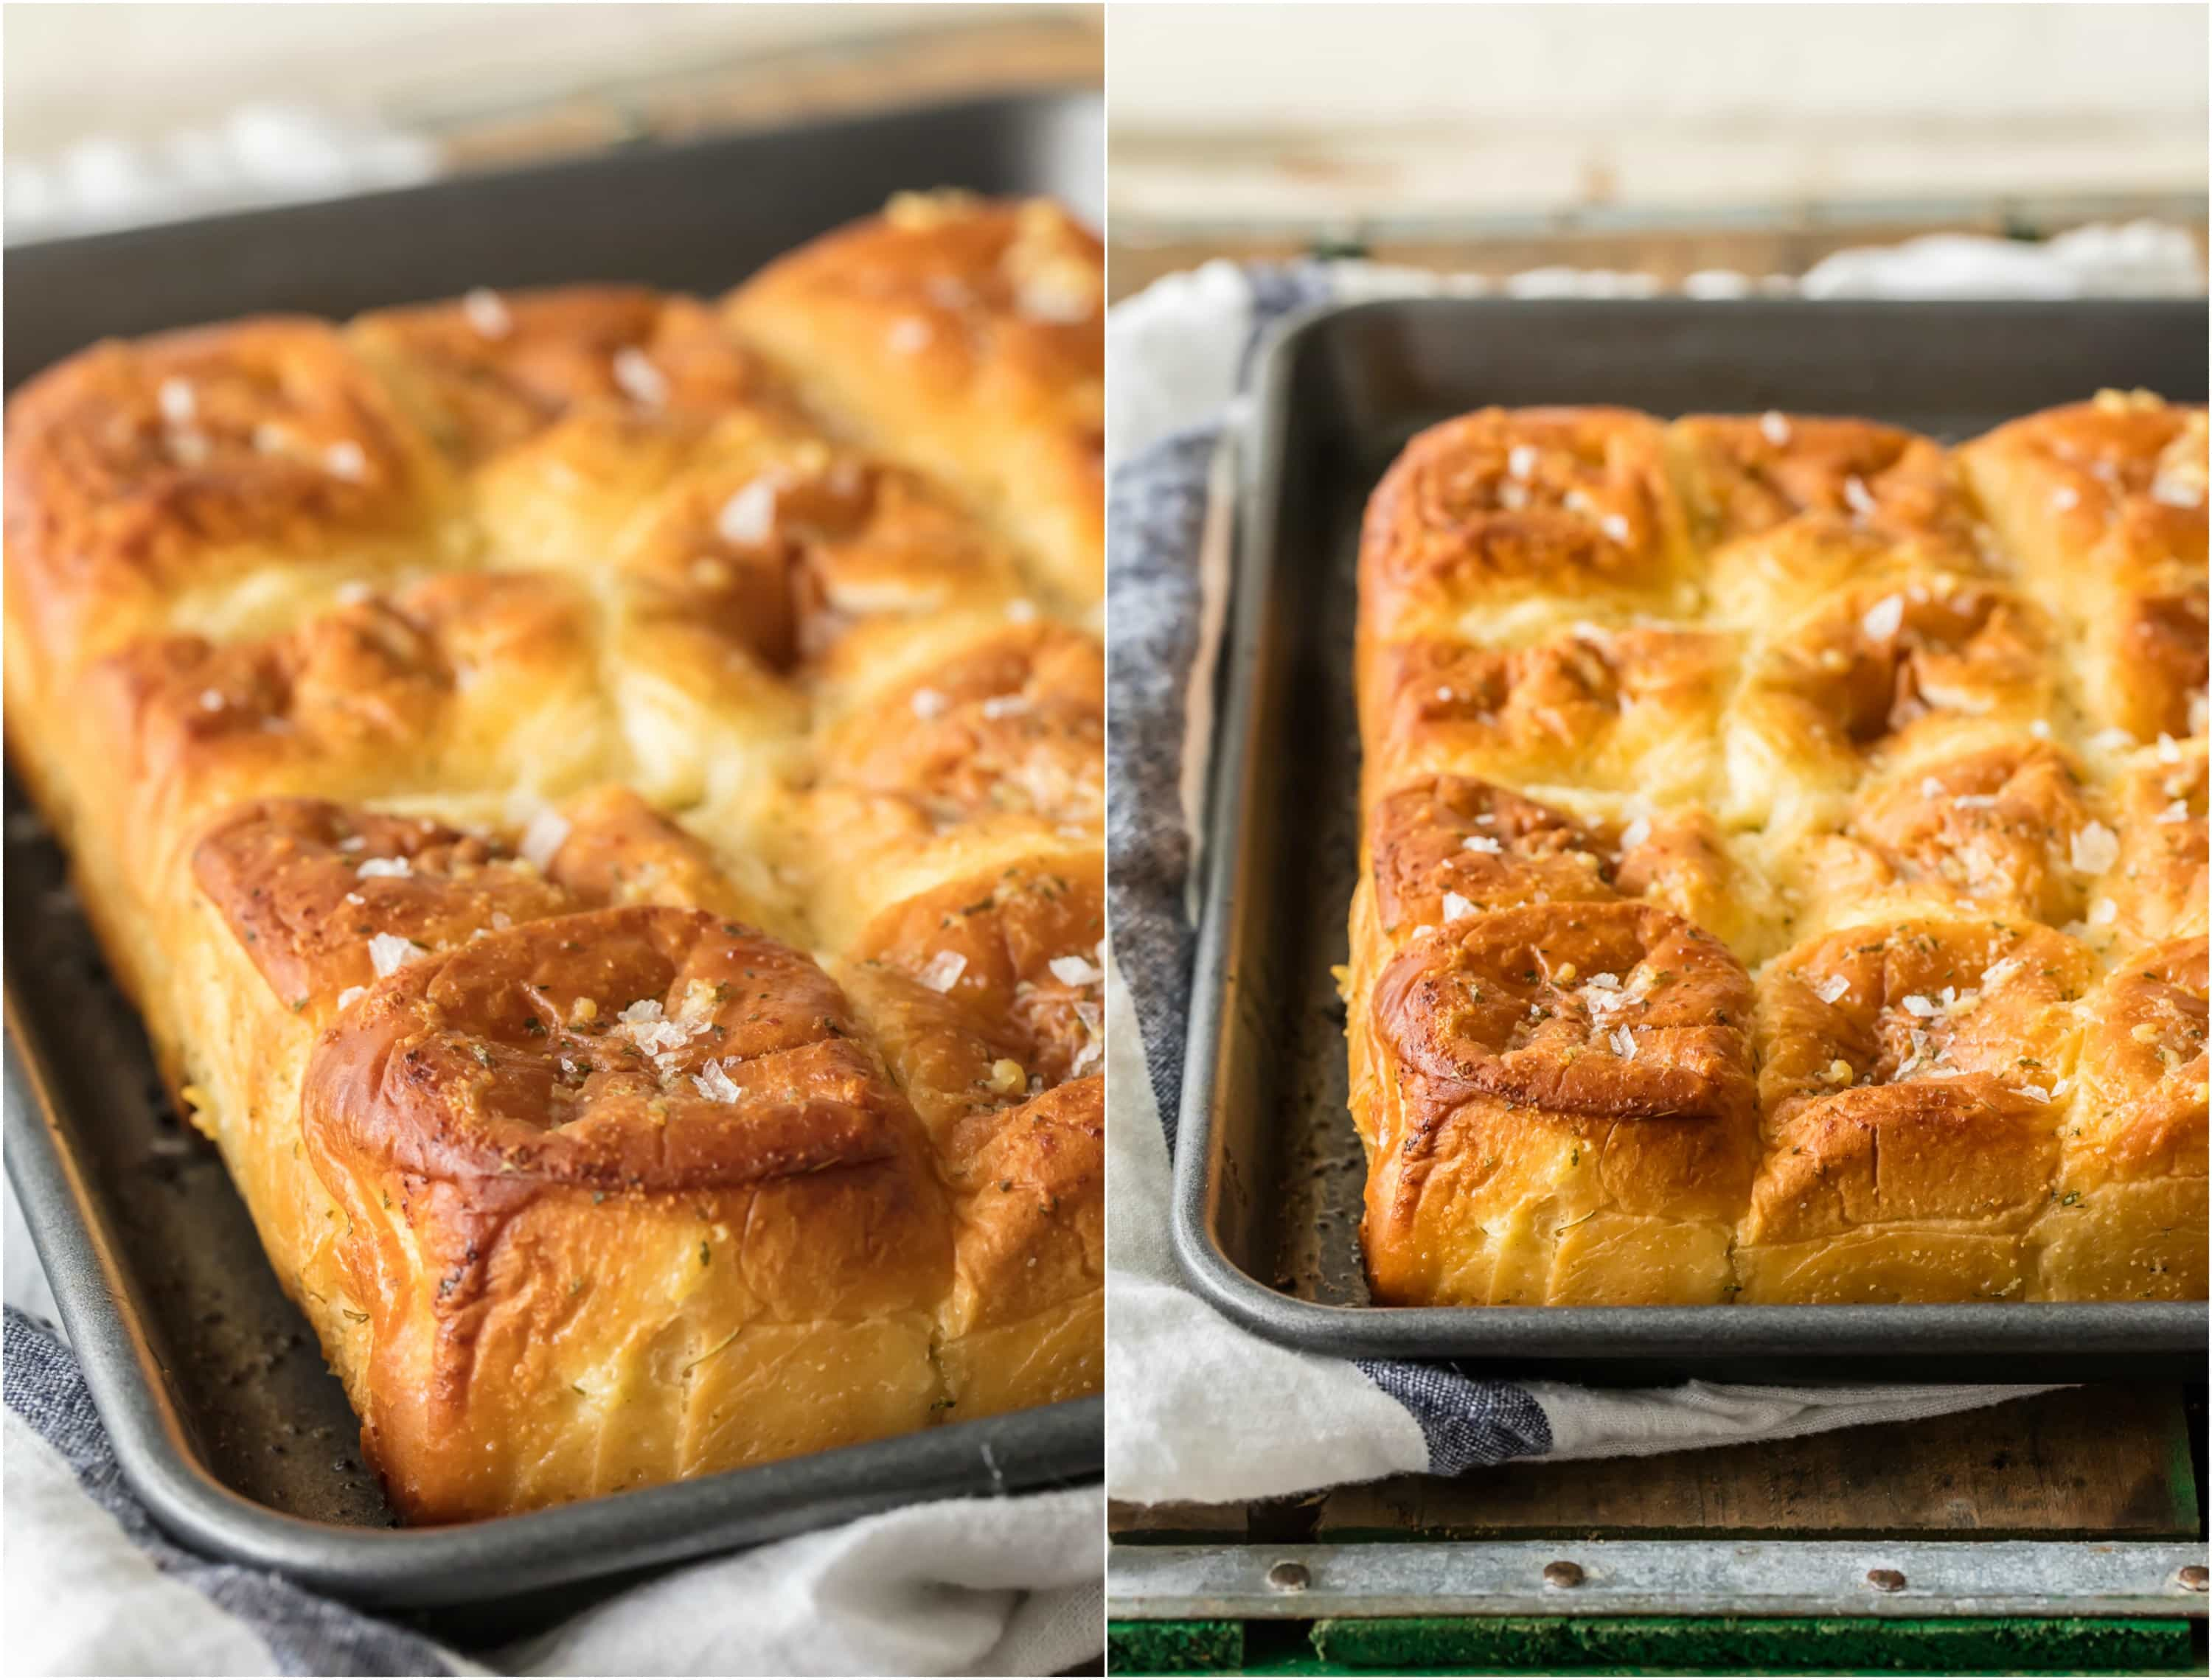 These EASY Garlic Butter Hawaiian Rolls are literally the best rolls I have EVER TASTED! Made in just minutes and SO easy, the perfect bread side for Thanksgiving, Christmas, or any holiday!